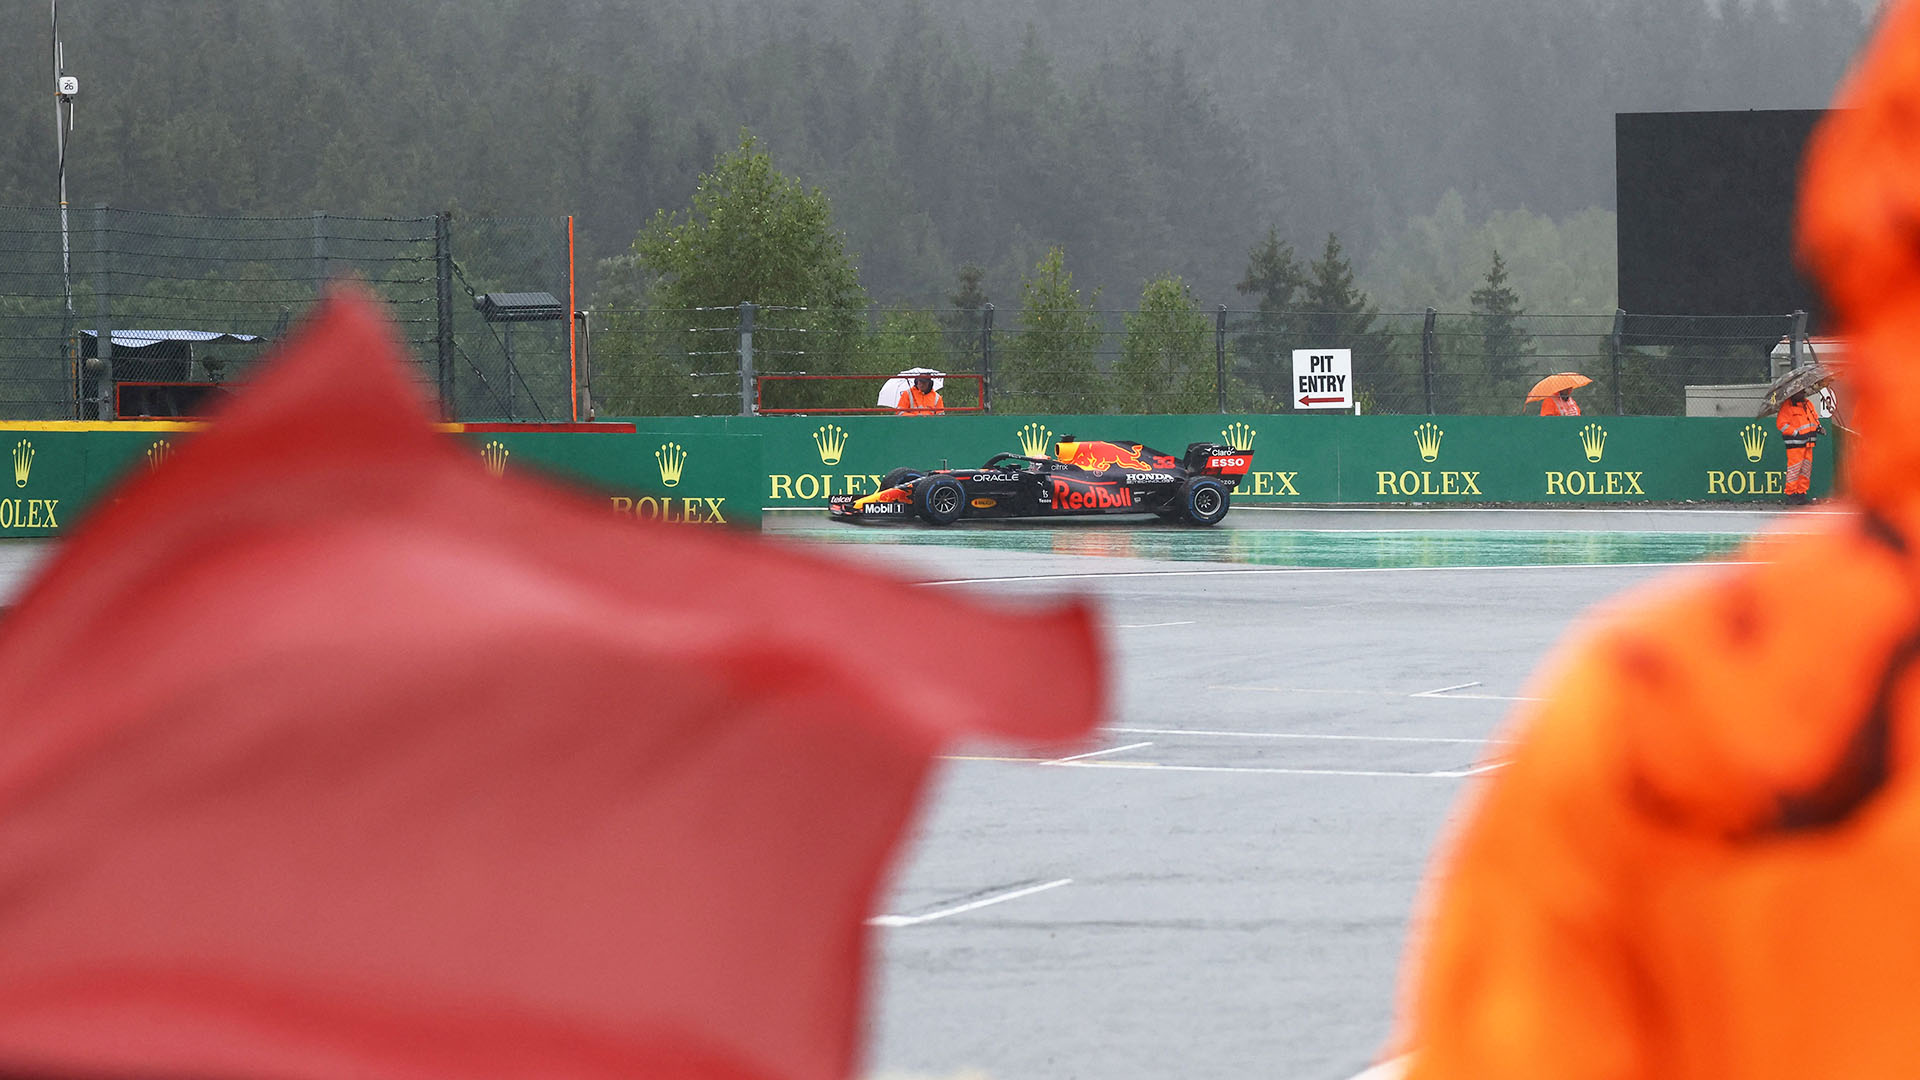 F1 Commission discusses potential changes to Sporting Regulations in wake of shortened Belgian GP